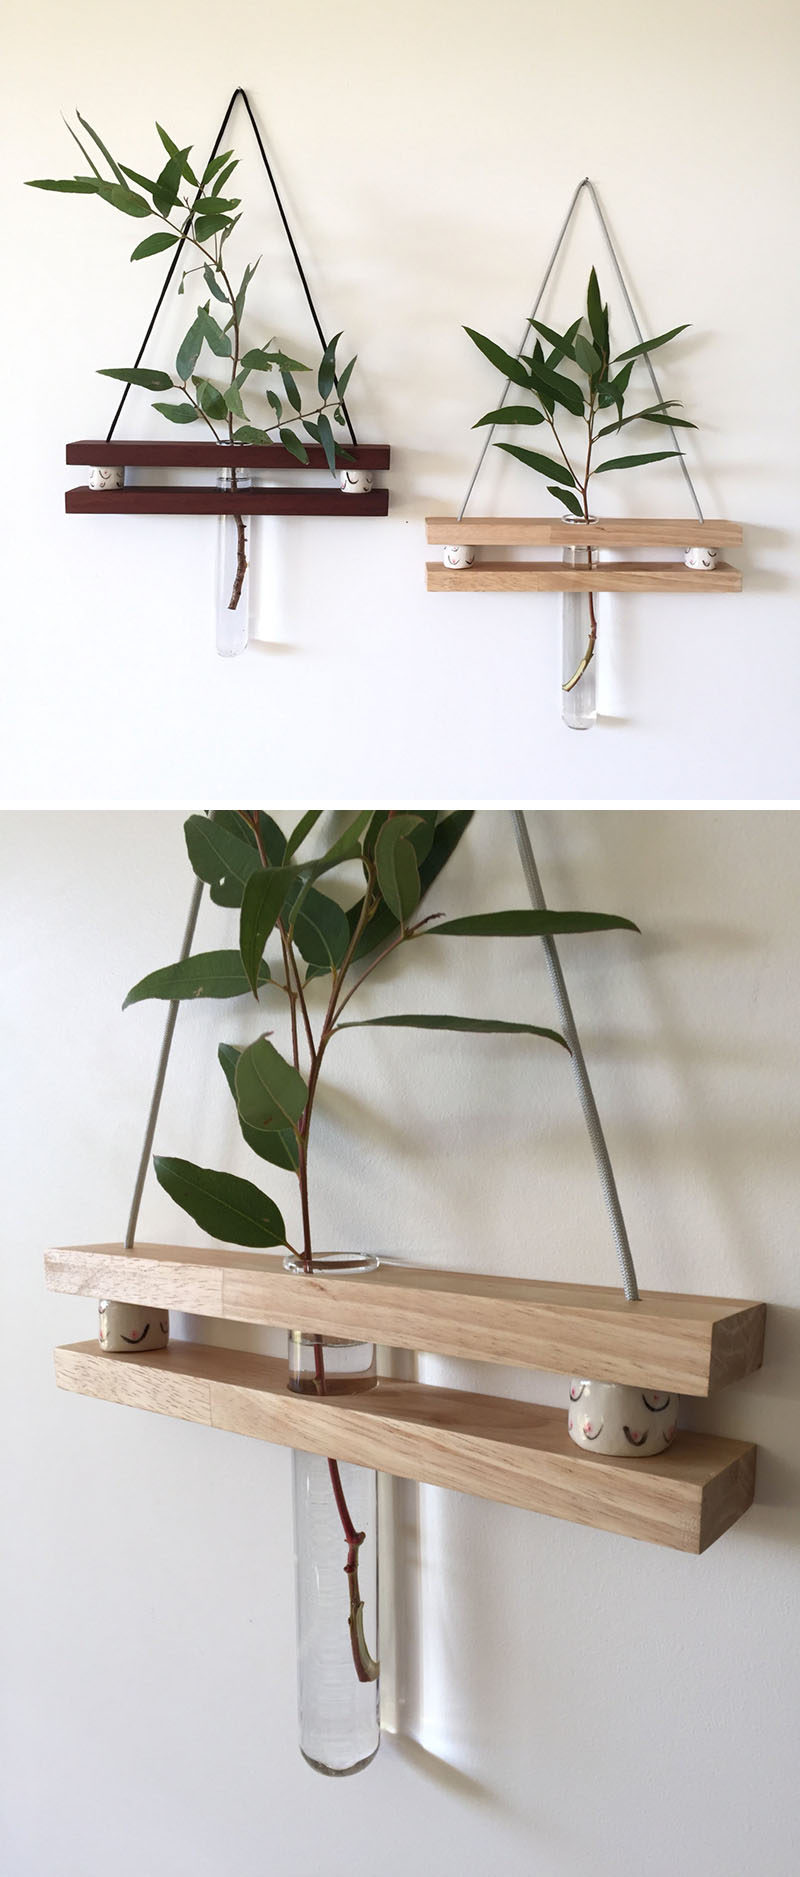 Fullsize Of Pictures Of Wall Shelves